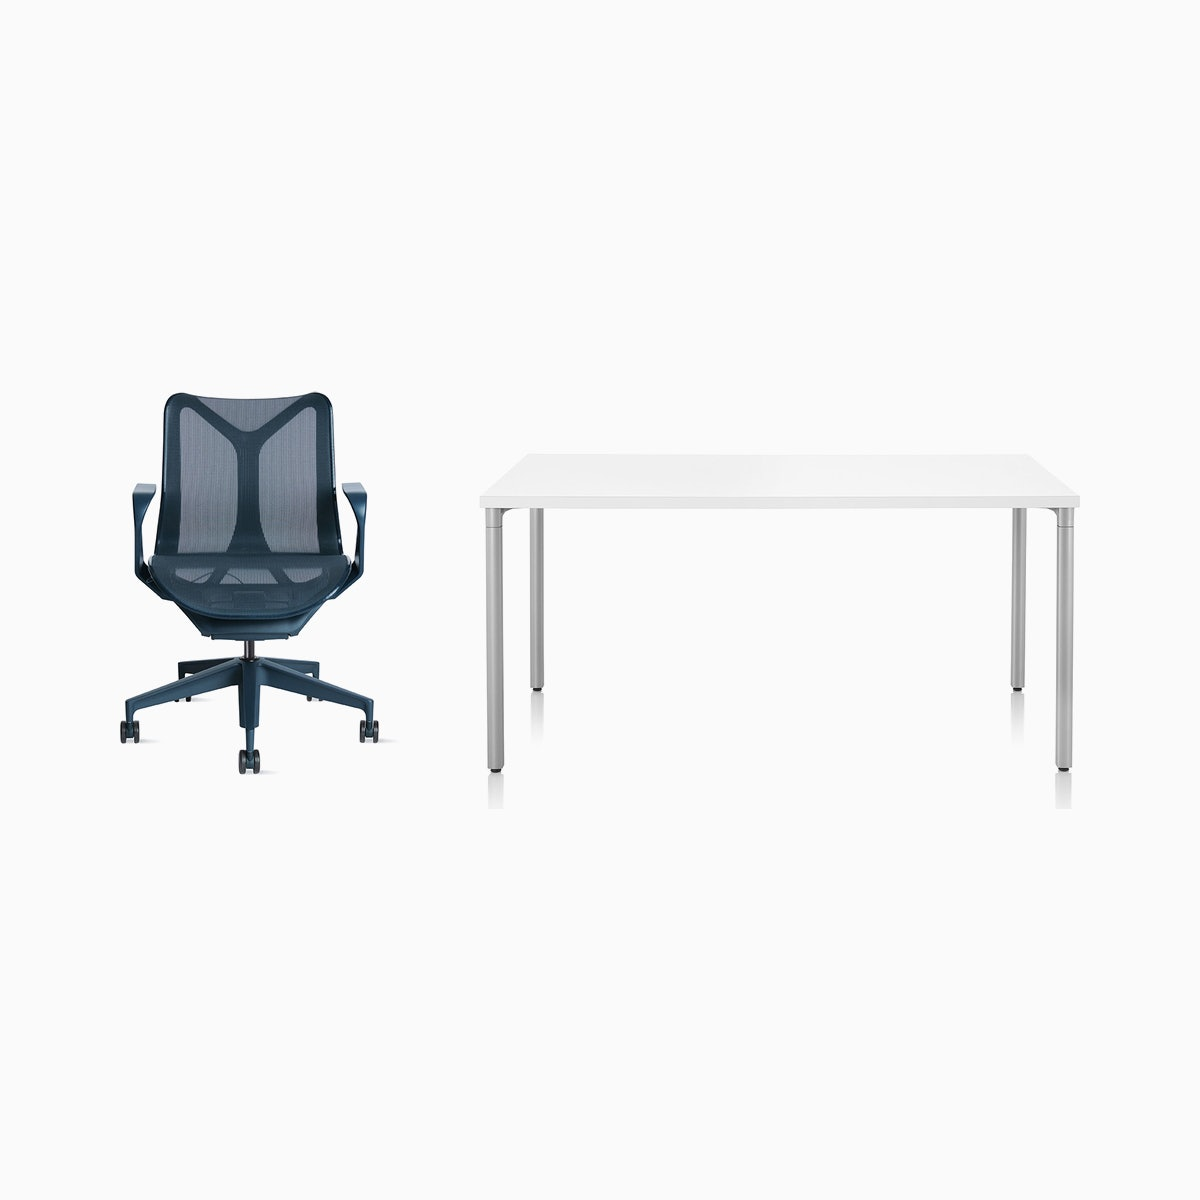 Cosm Chair / Everywhere Table Office Bundle